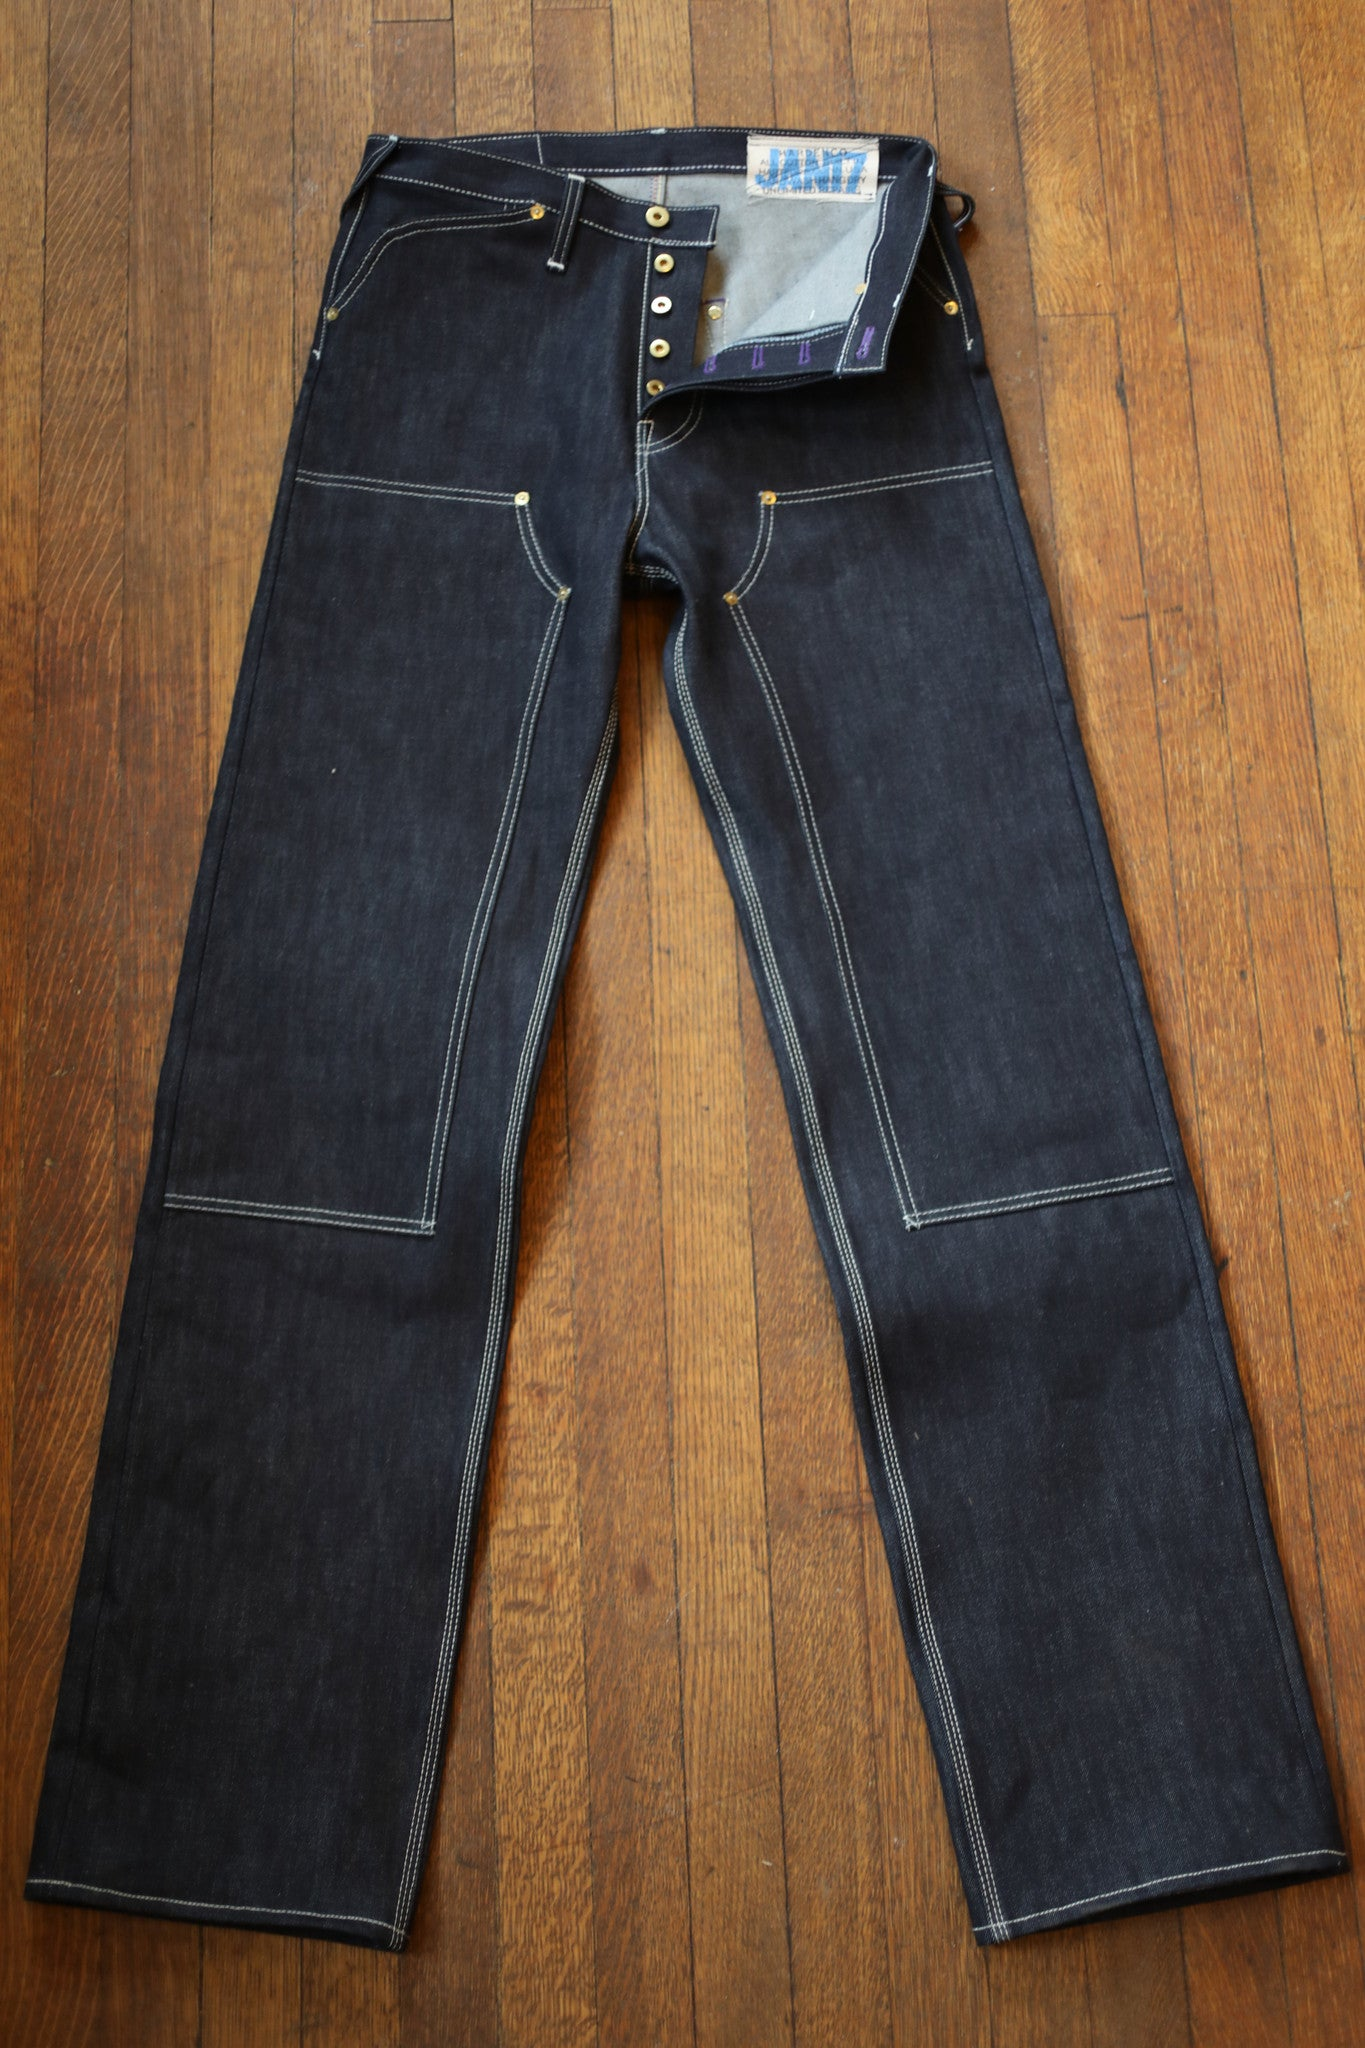 005 Jean, Double Front Utility